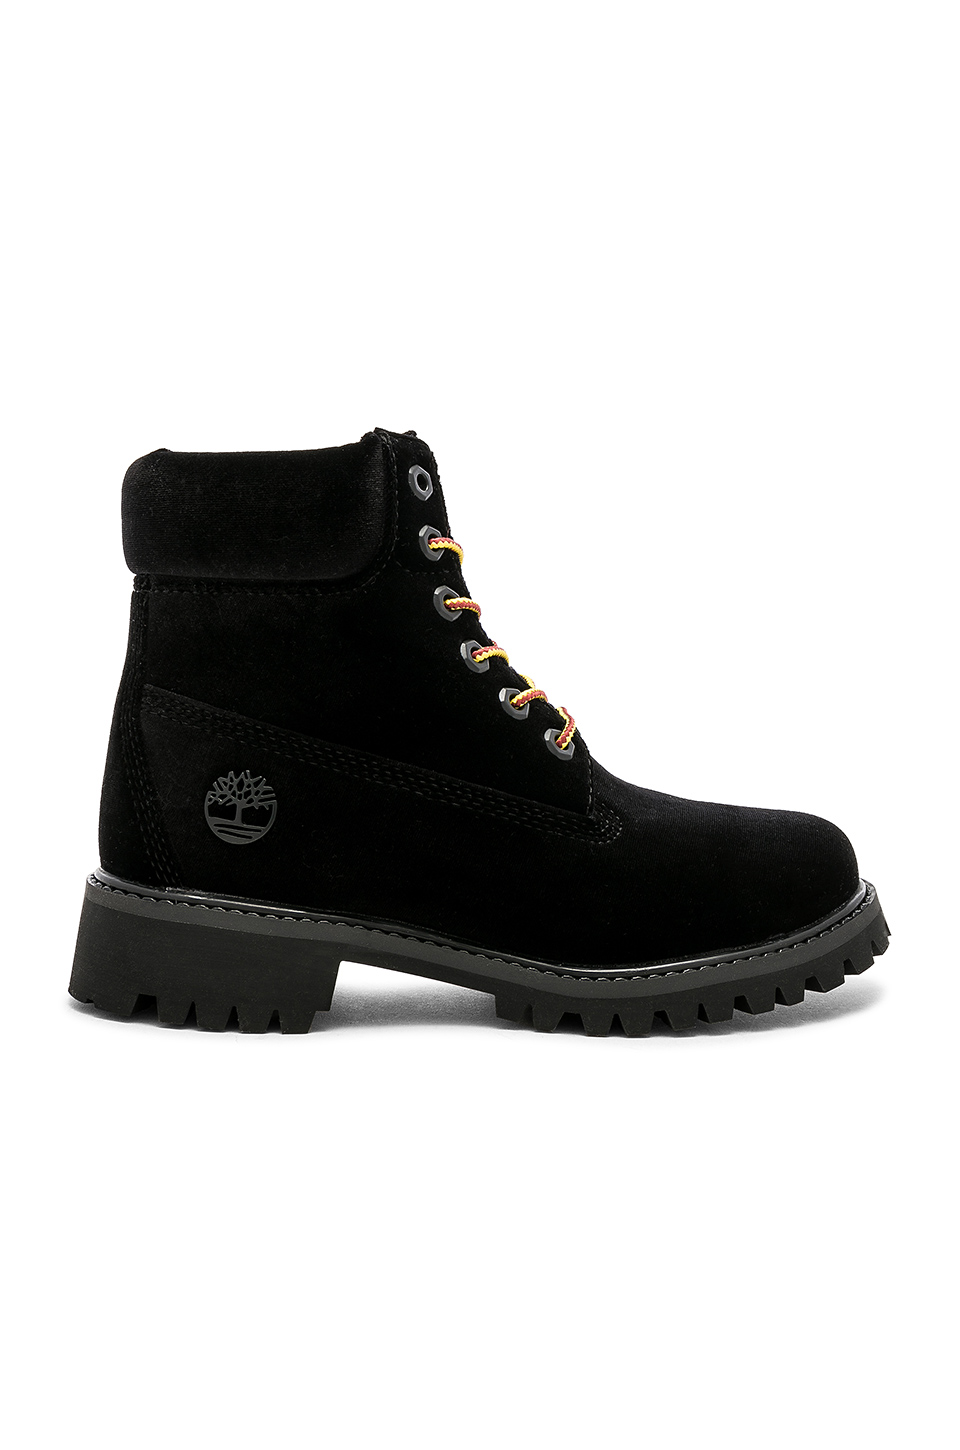 OFF-WHITE Timberland Boot in Black